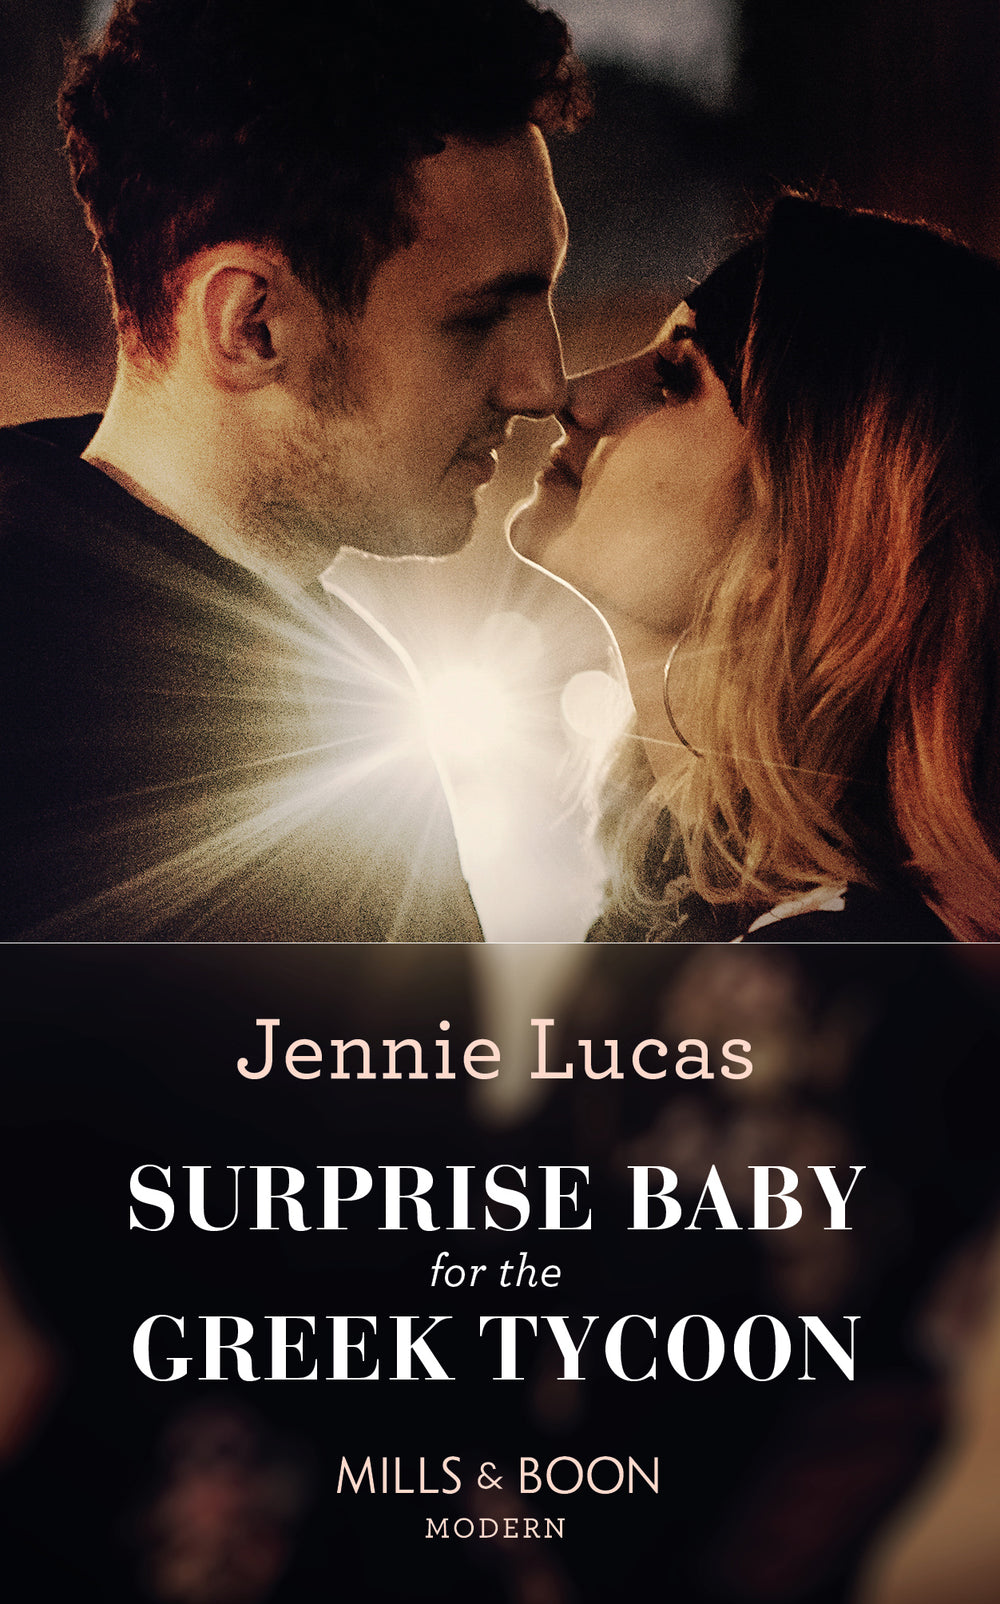 Surprise Baby for the Greek Tycoon - Chapter 14